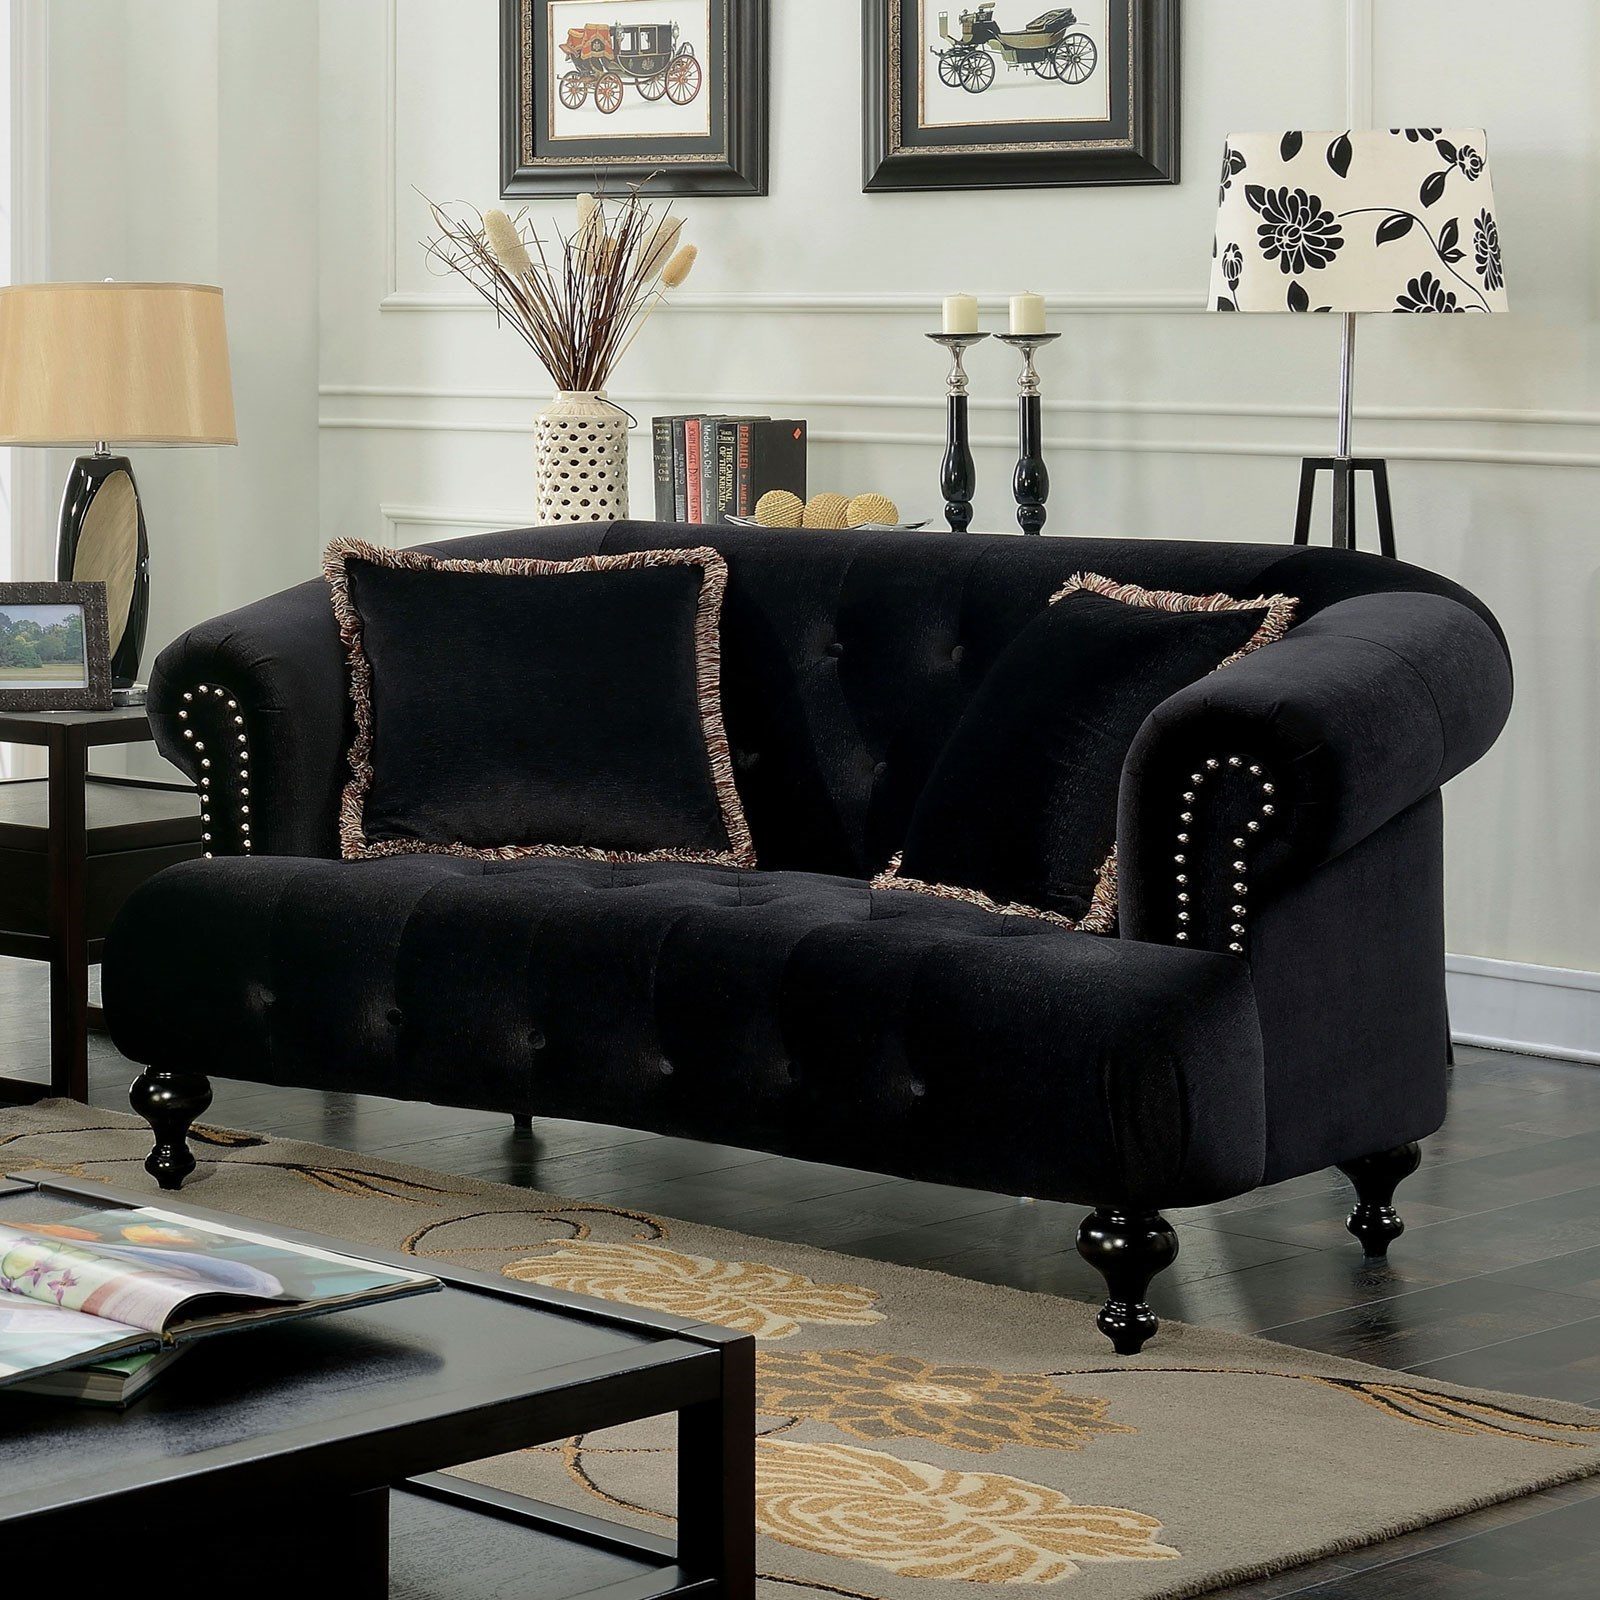 Home Furniture For Less: Furniture Of America Rayne Glamorous Loveseat With Tufted